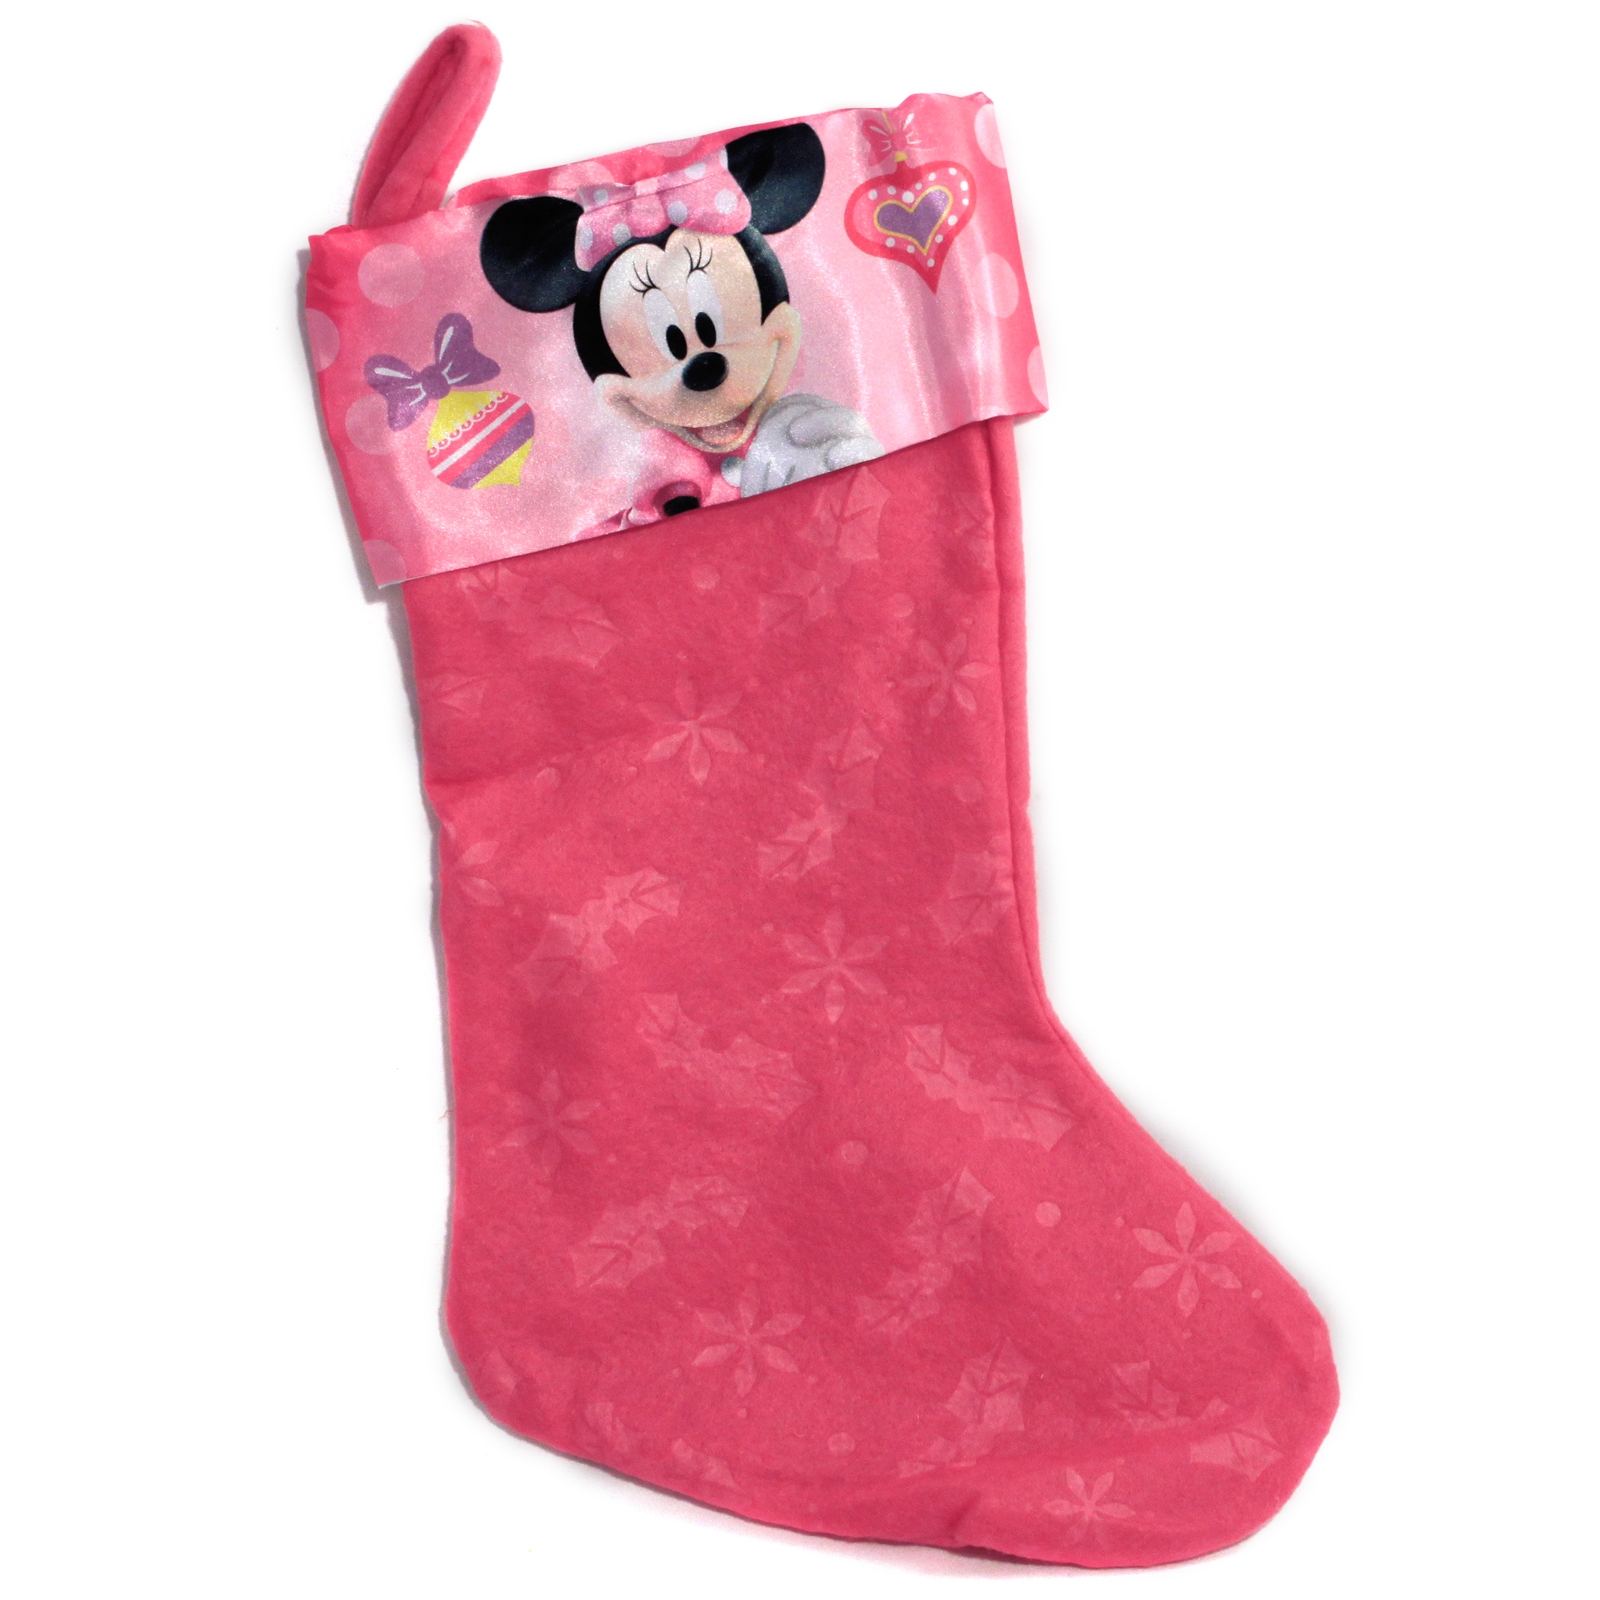 "Disney Minnie Mouse Felt 18"" Kids Christmas Stocking"